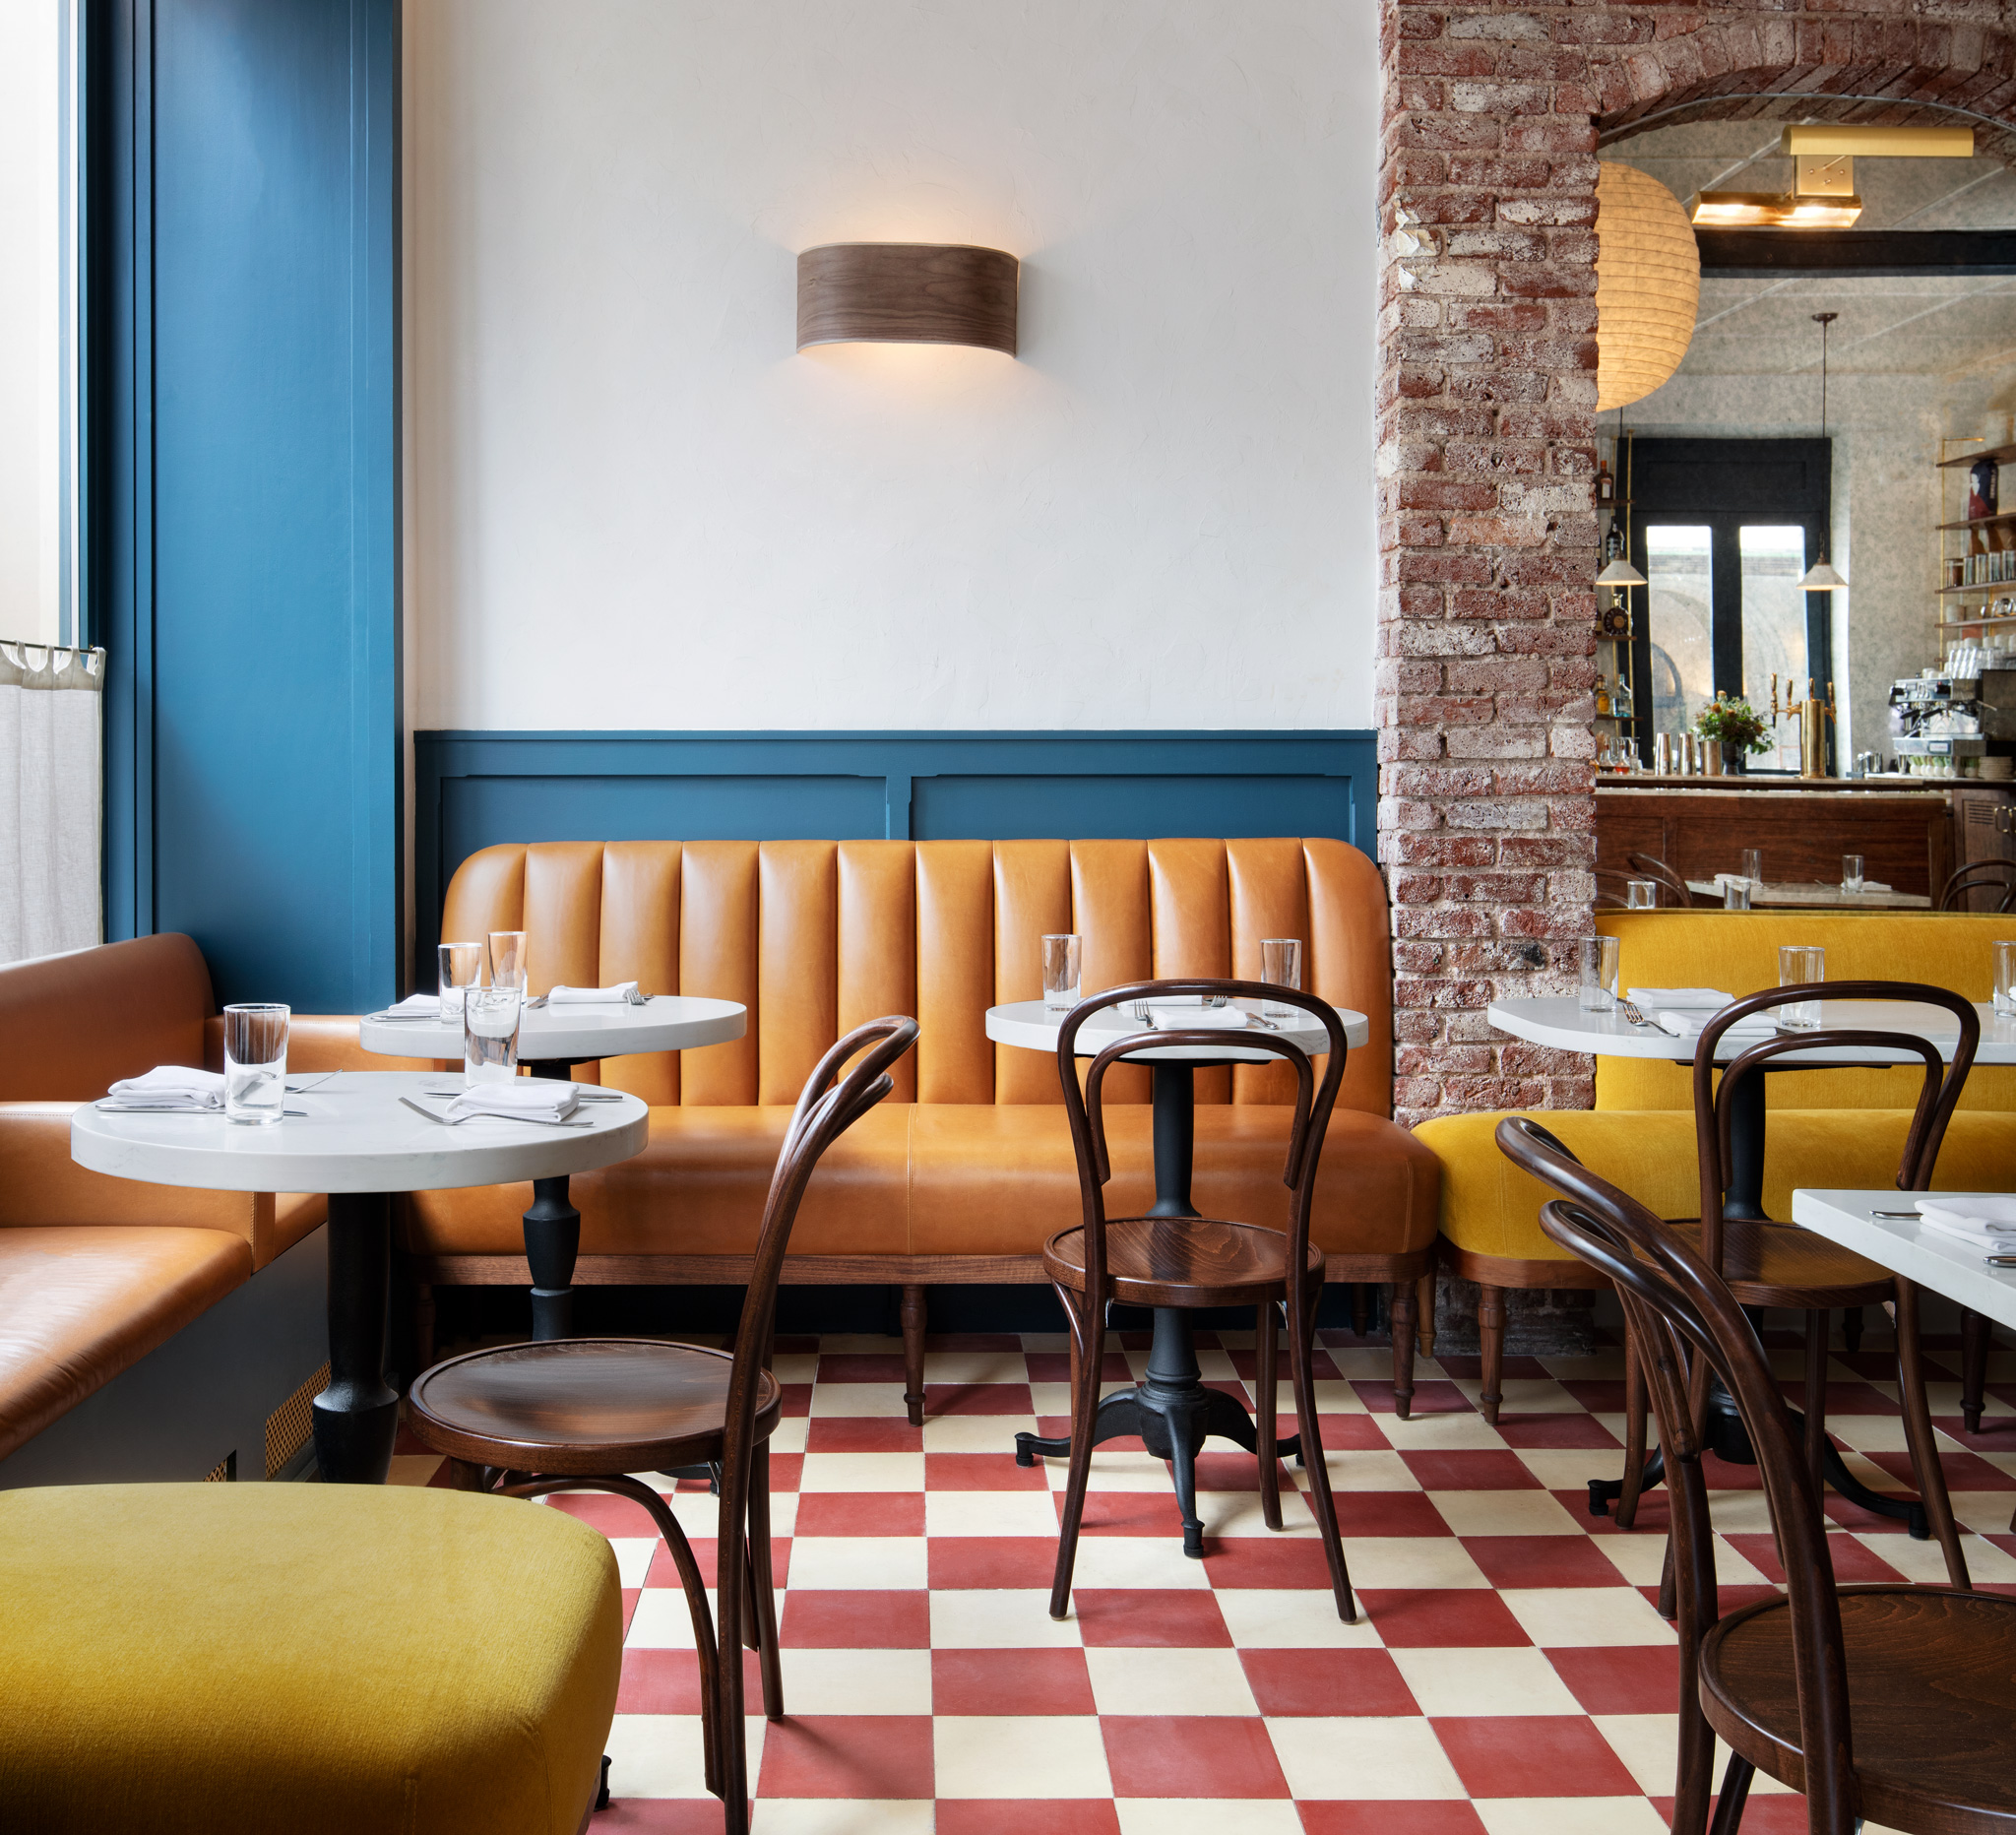 At a New Chelsea Townhouse Restaurant, Regulars Can Soon Rent a Room Upstairs